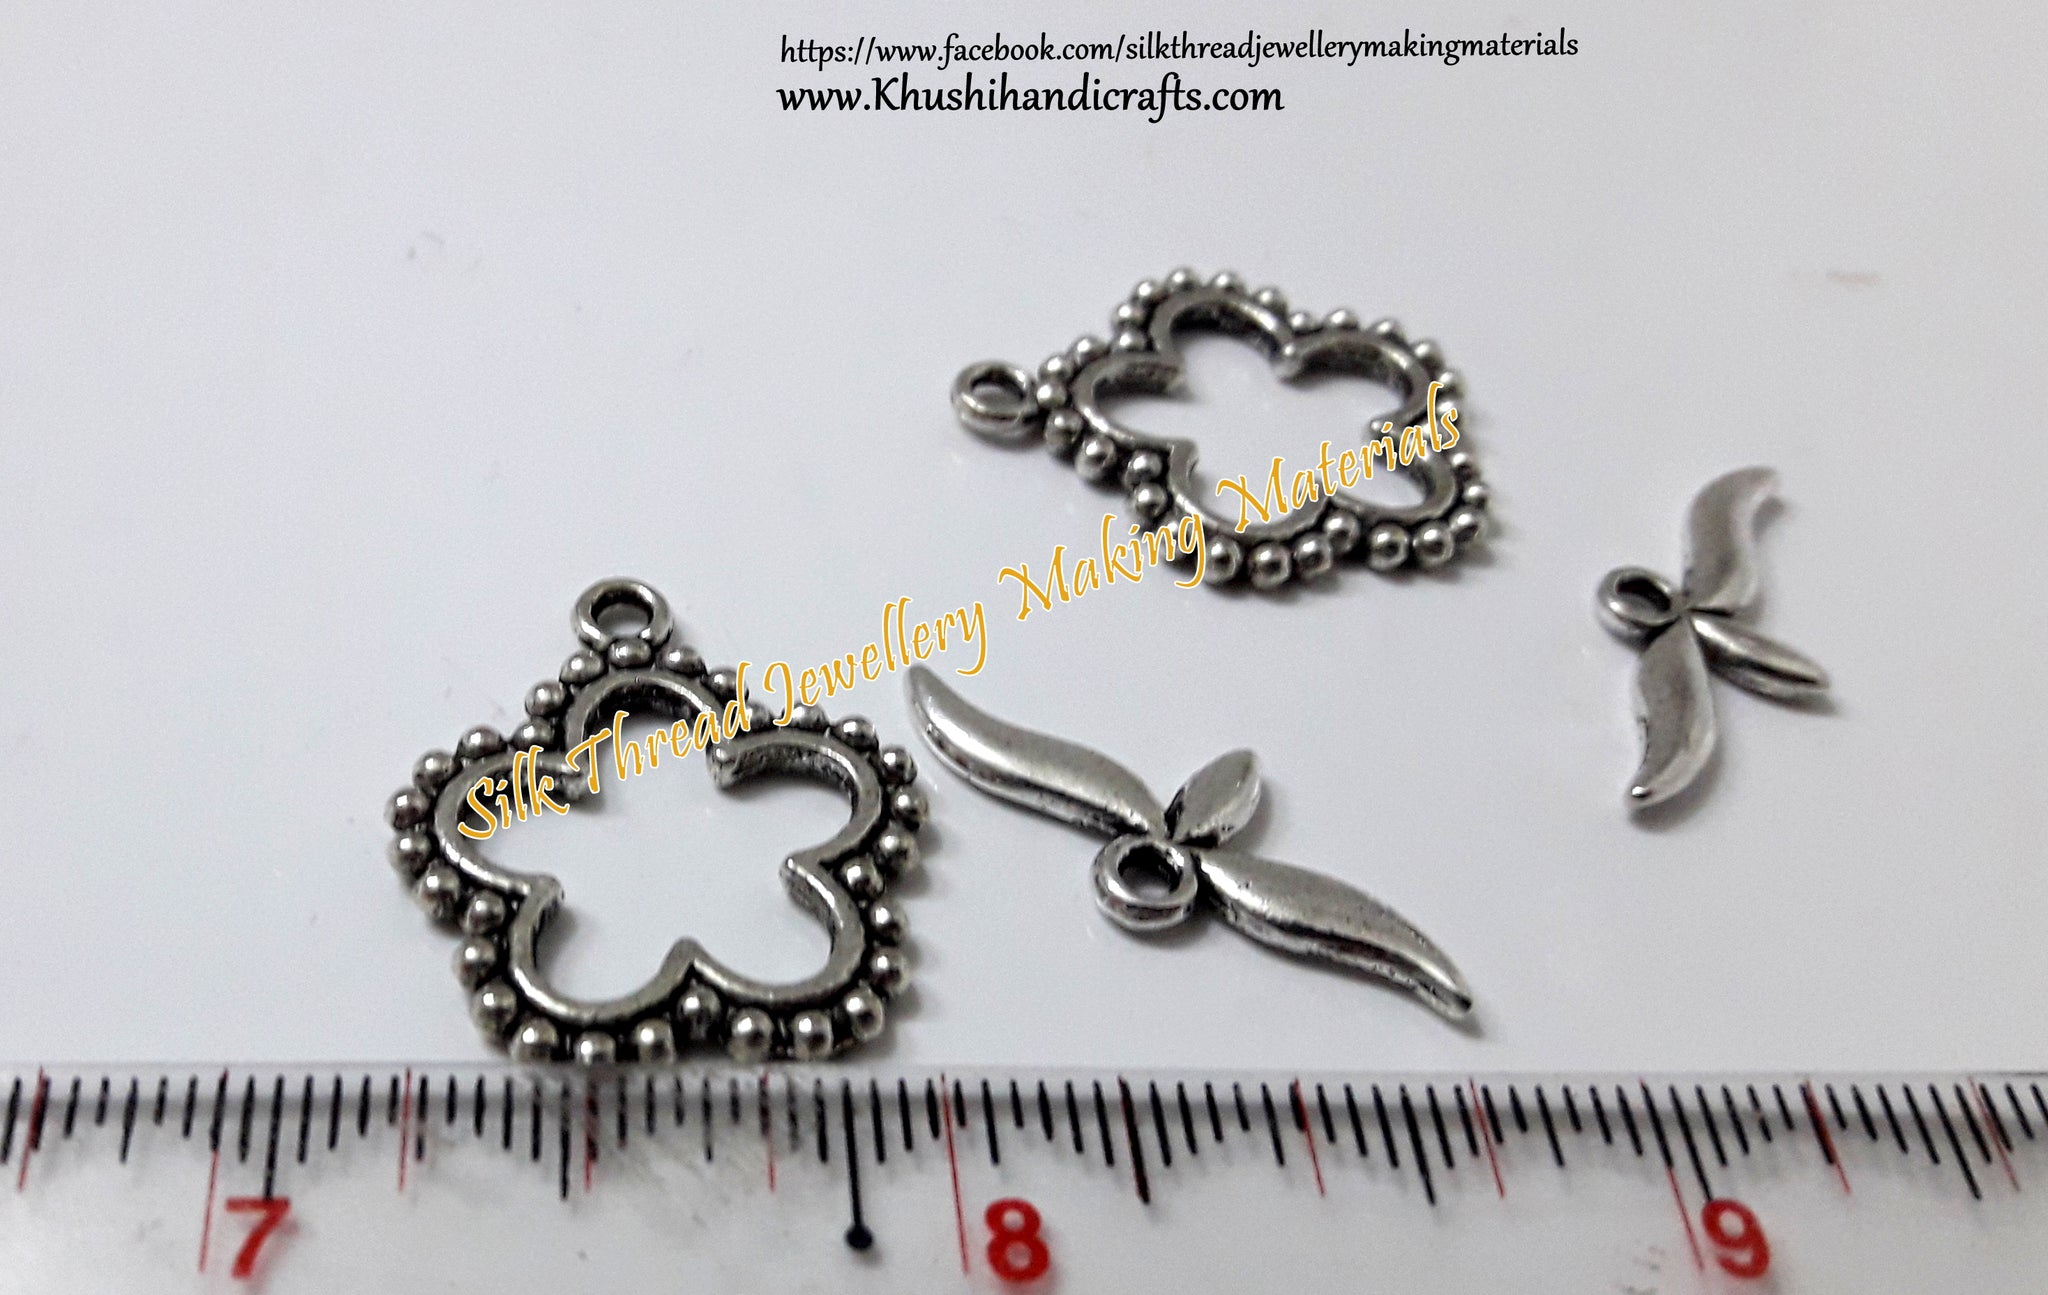 Flower Toggle clasps